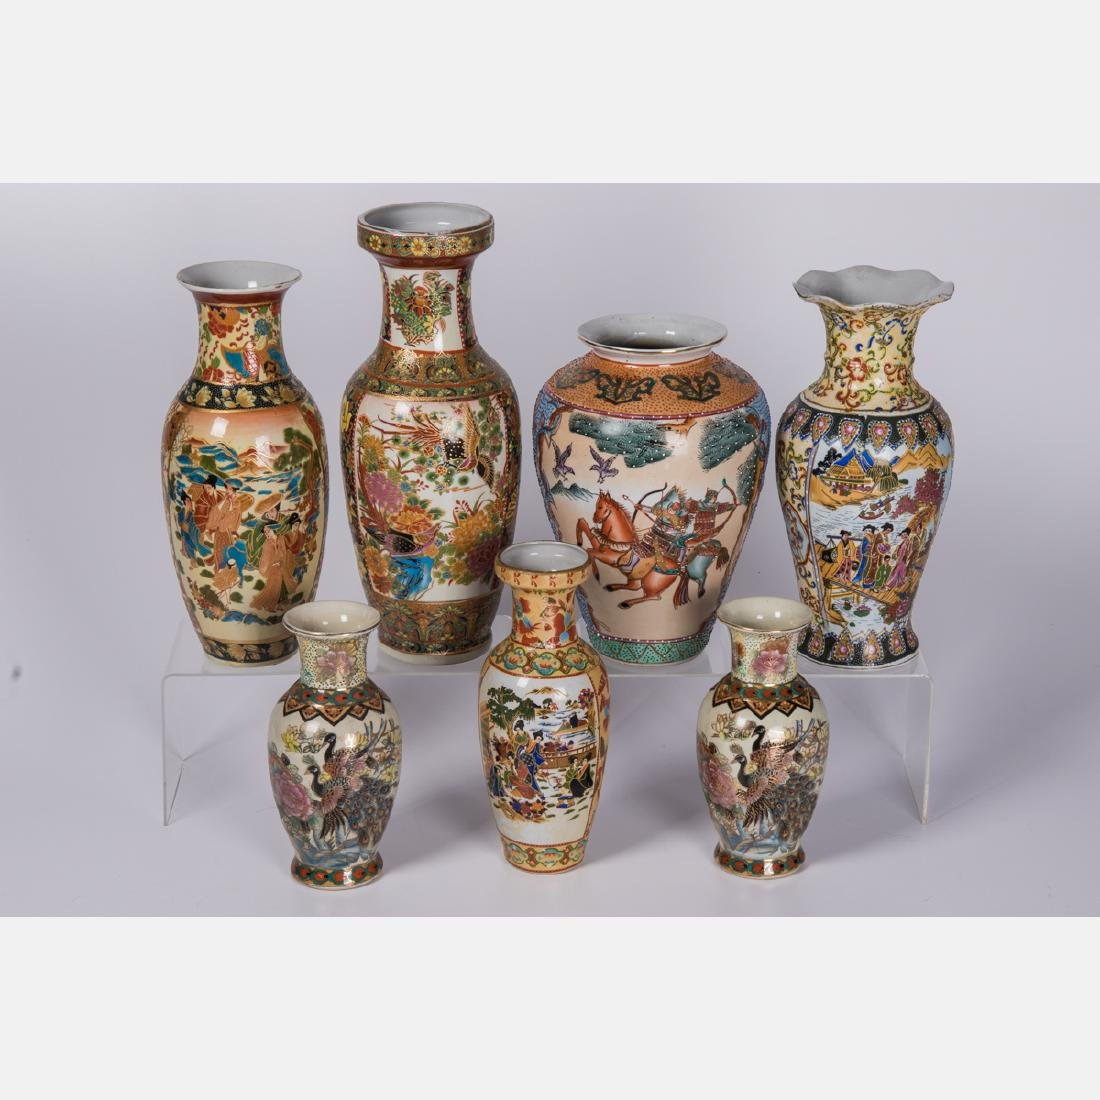 A Group of Seven Japanese Porcelain Vases, 20th